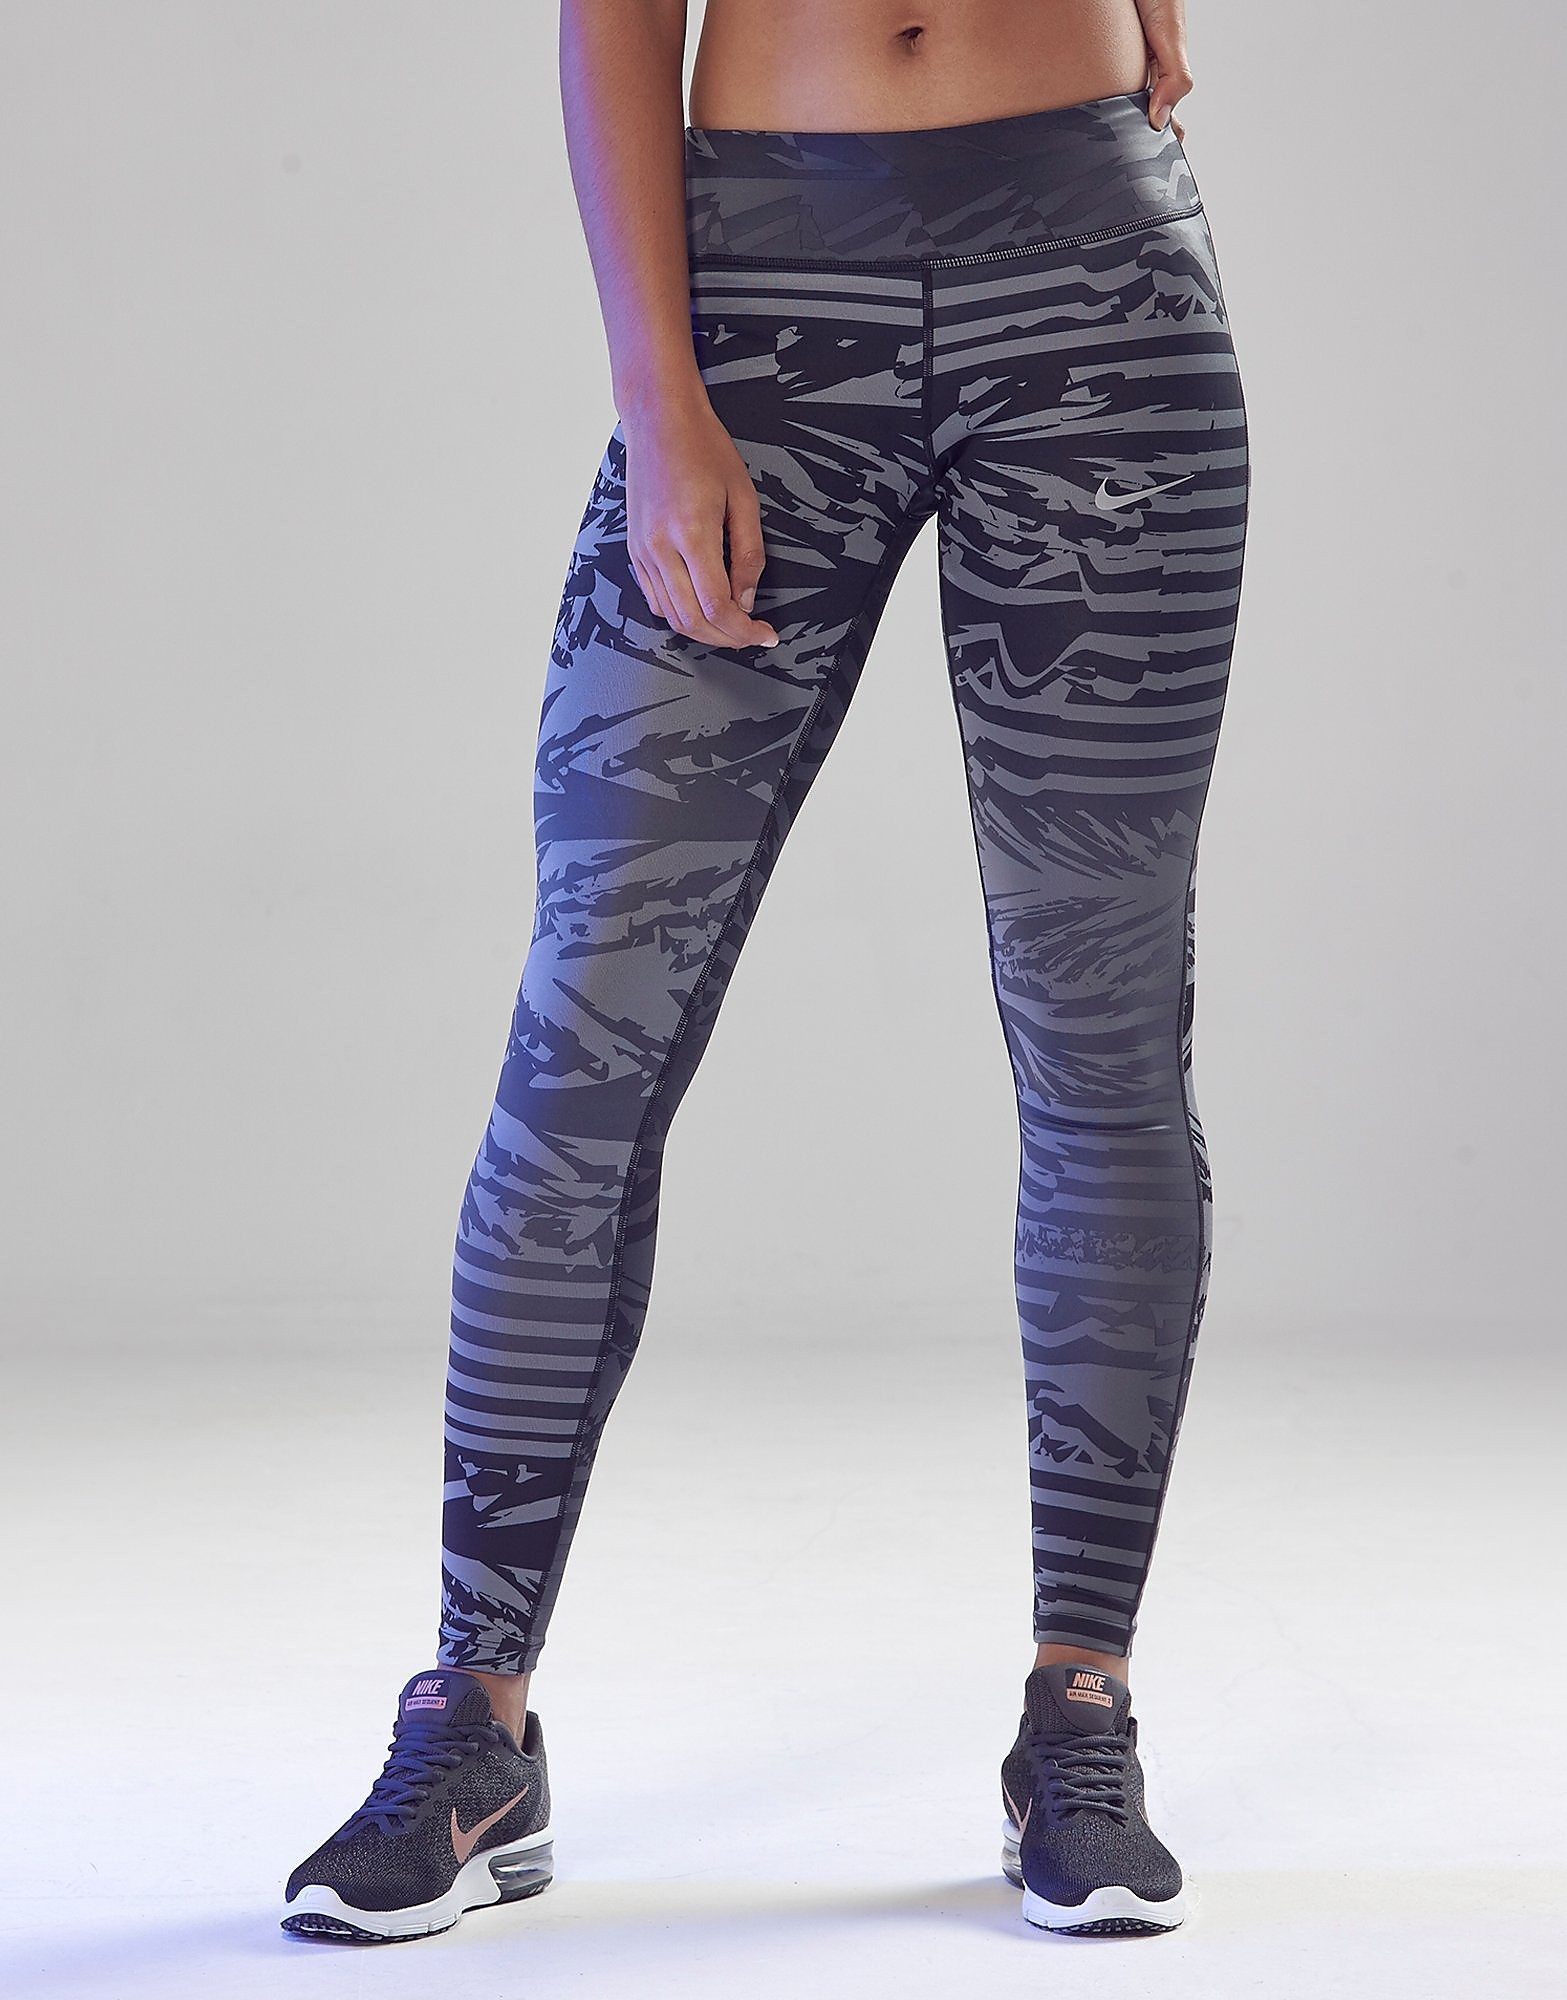 Nike Print Essentials Running Tights